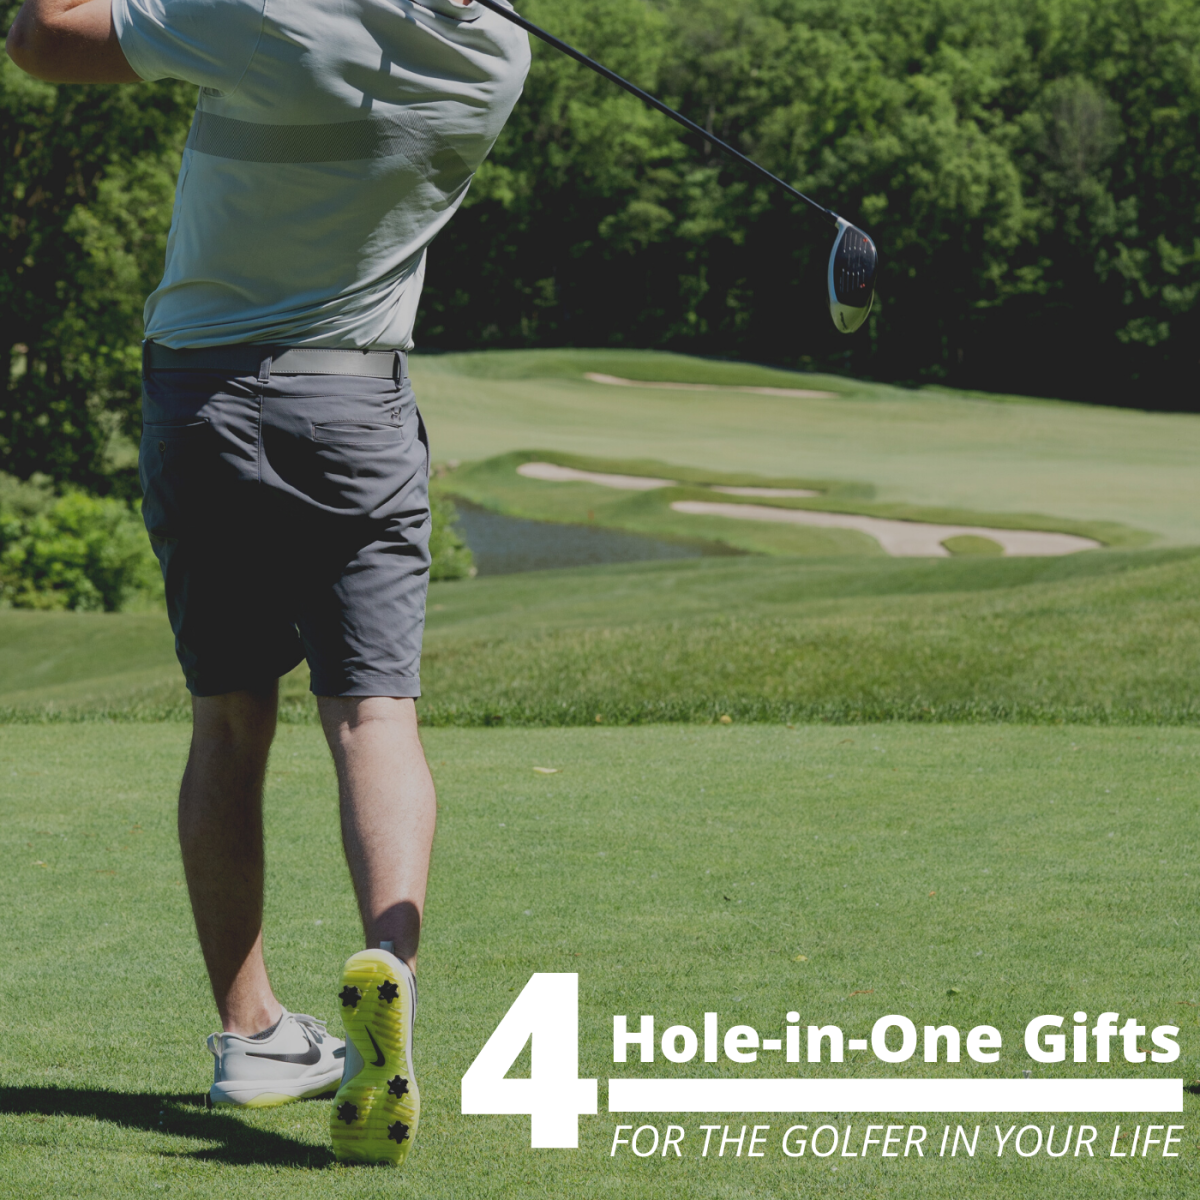 If your loved one has a passion for hitting the links, why not get them something they can use while they play?